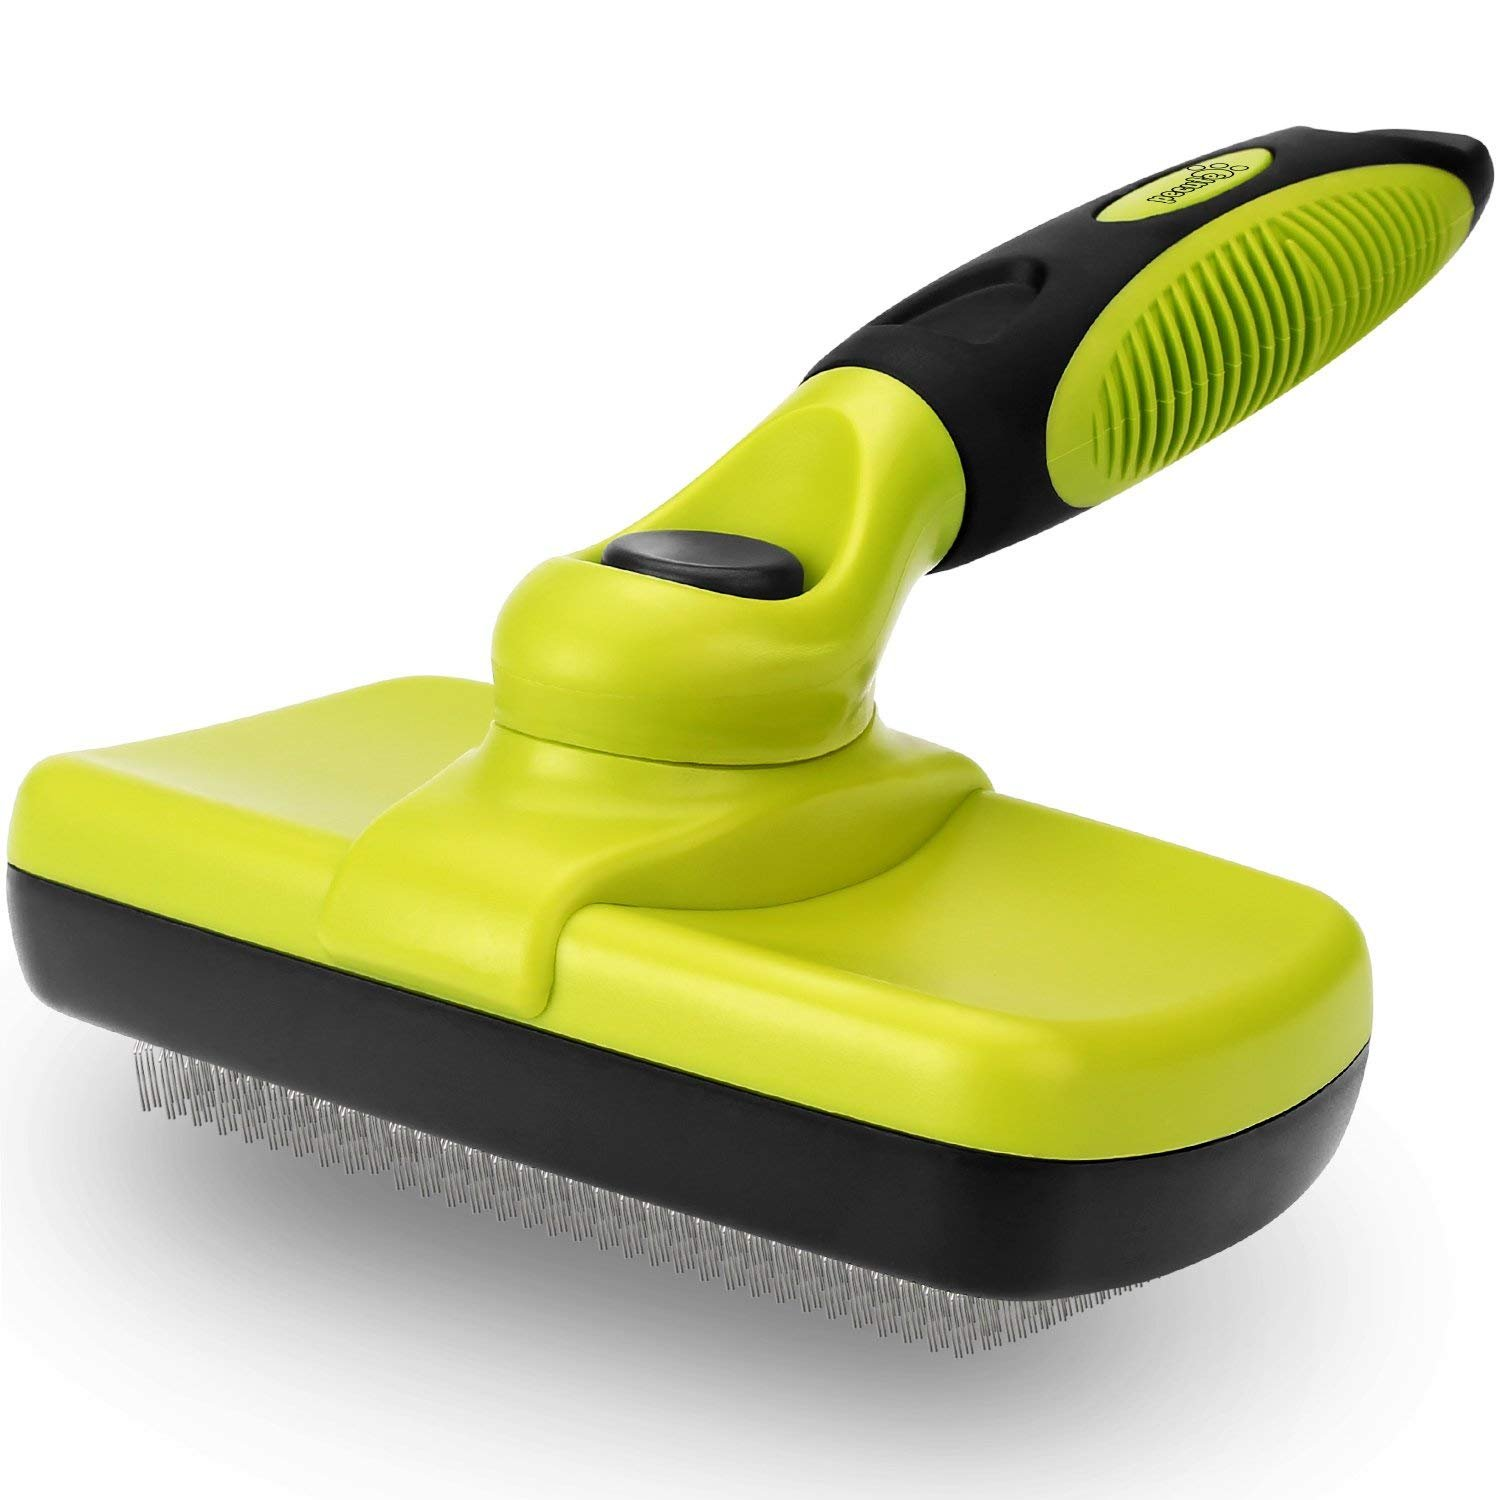 Dog Brush Cat Pet Grooming Brush Comb Self Cleaning Slicker Brush Reduces Shedding Up to 90% Removes Tangles De Sheds for Long Medium & Thick Hair Pet Green and Black